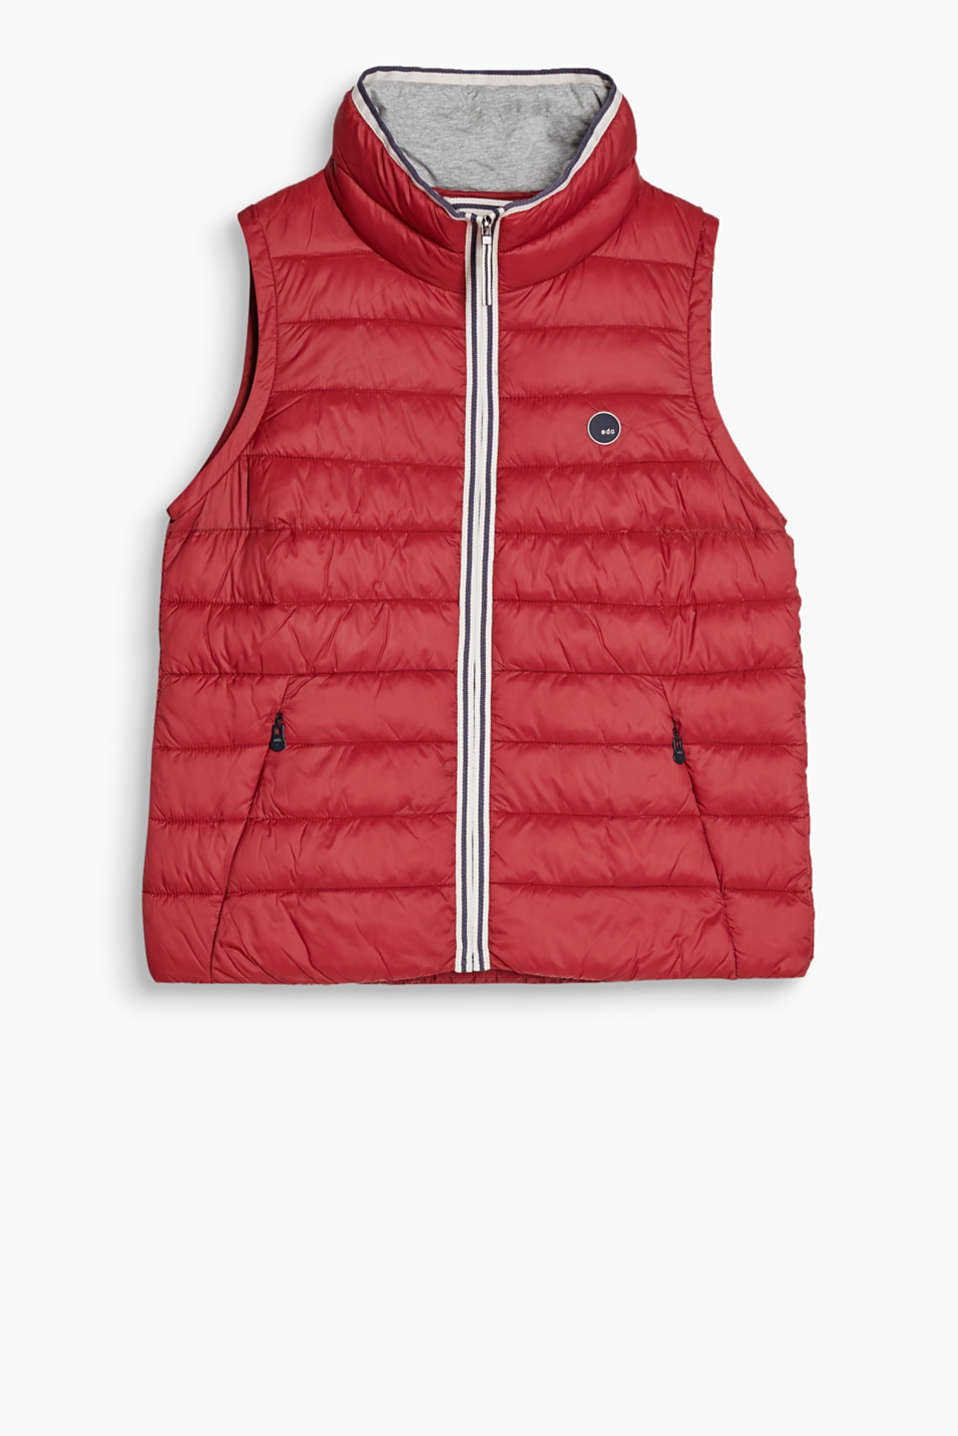 Keeps you warm and yet feels super lightweight: quilted body warmer with a jersey-lined collar